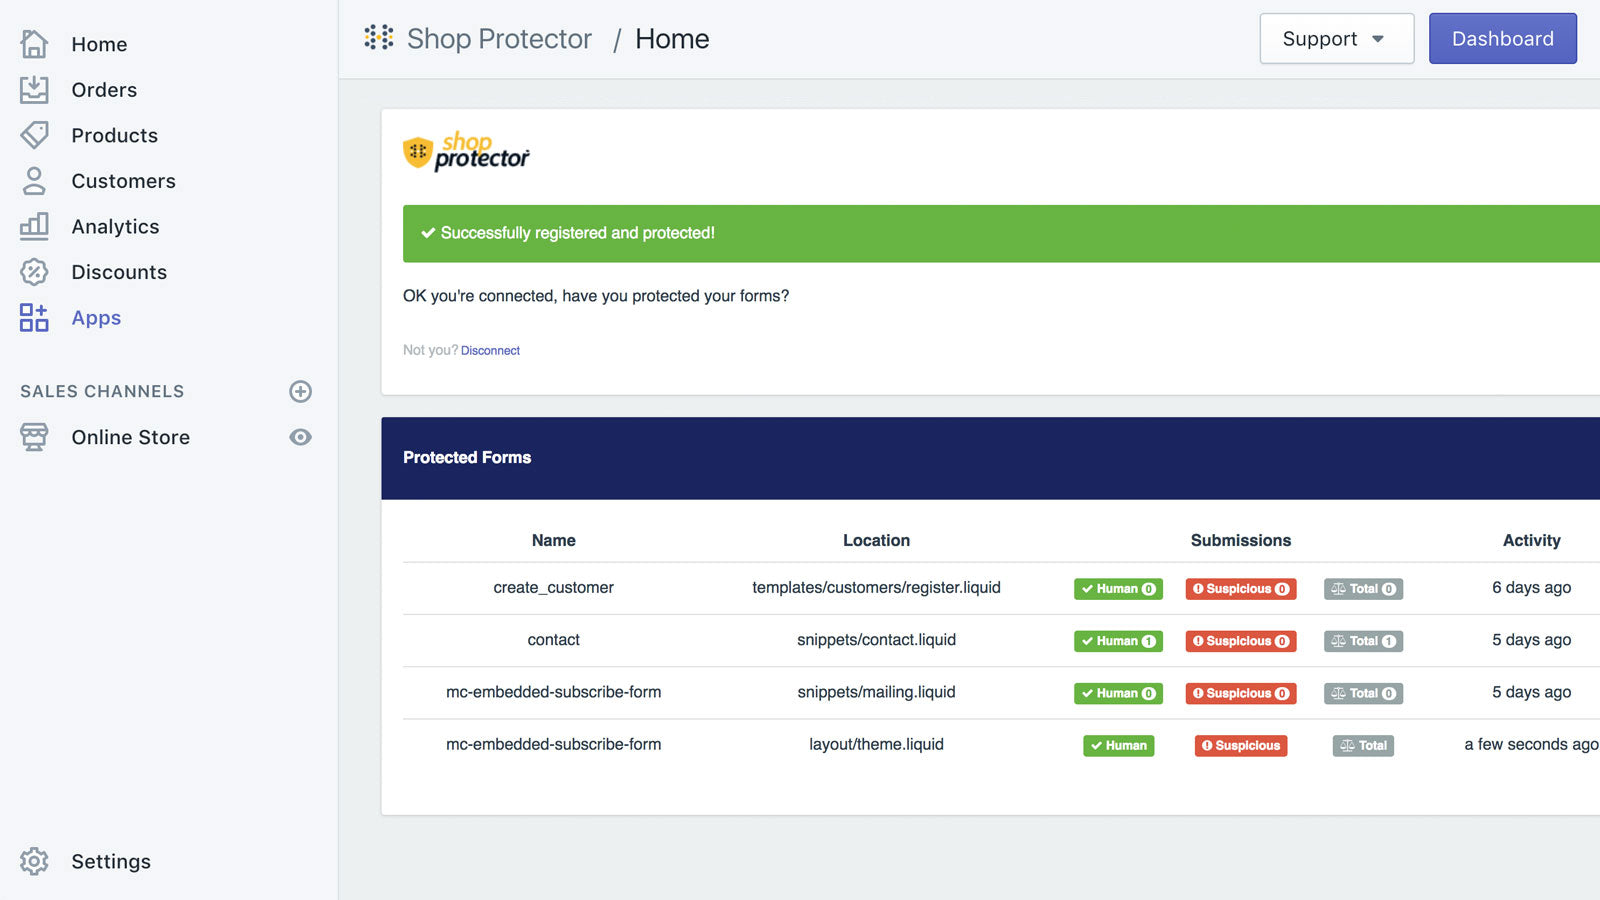 View activity for your protected forms